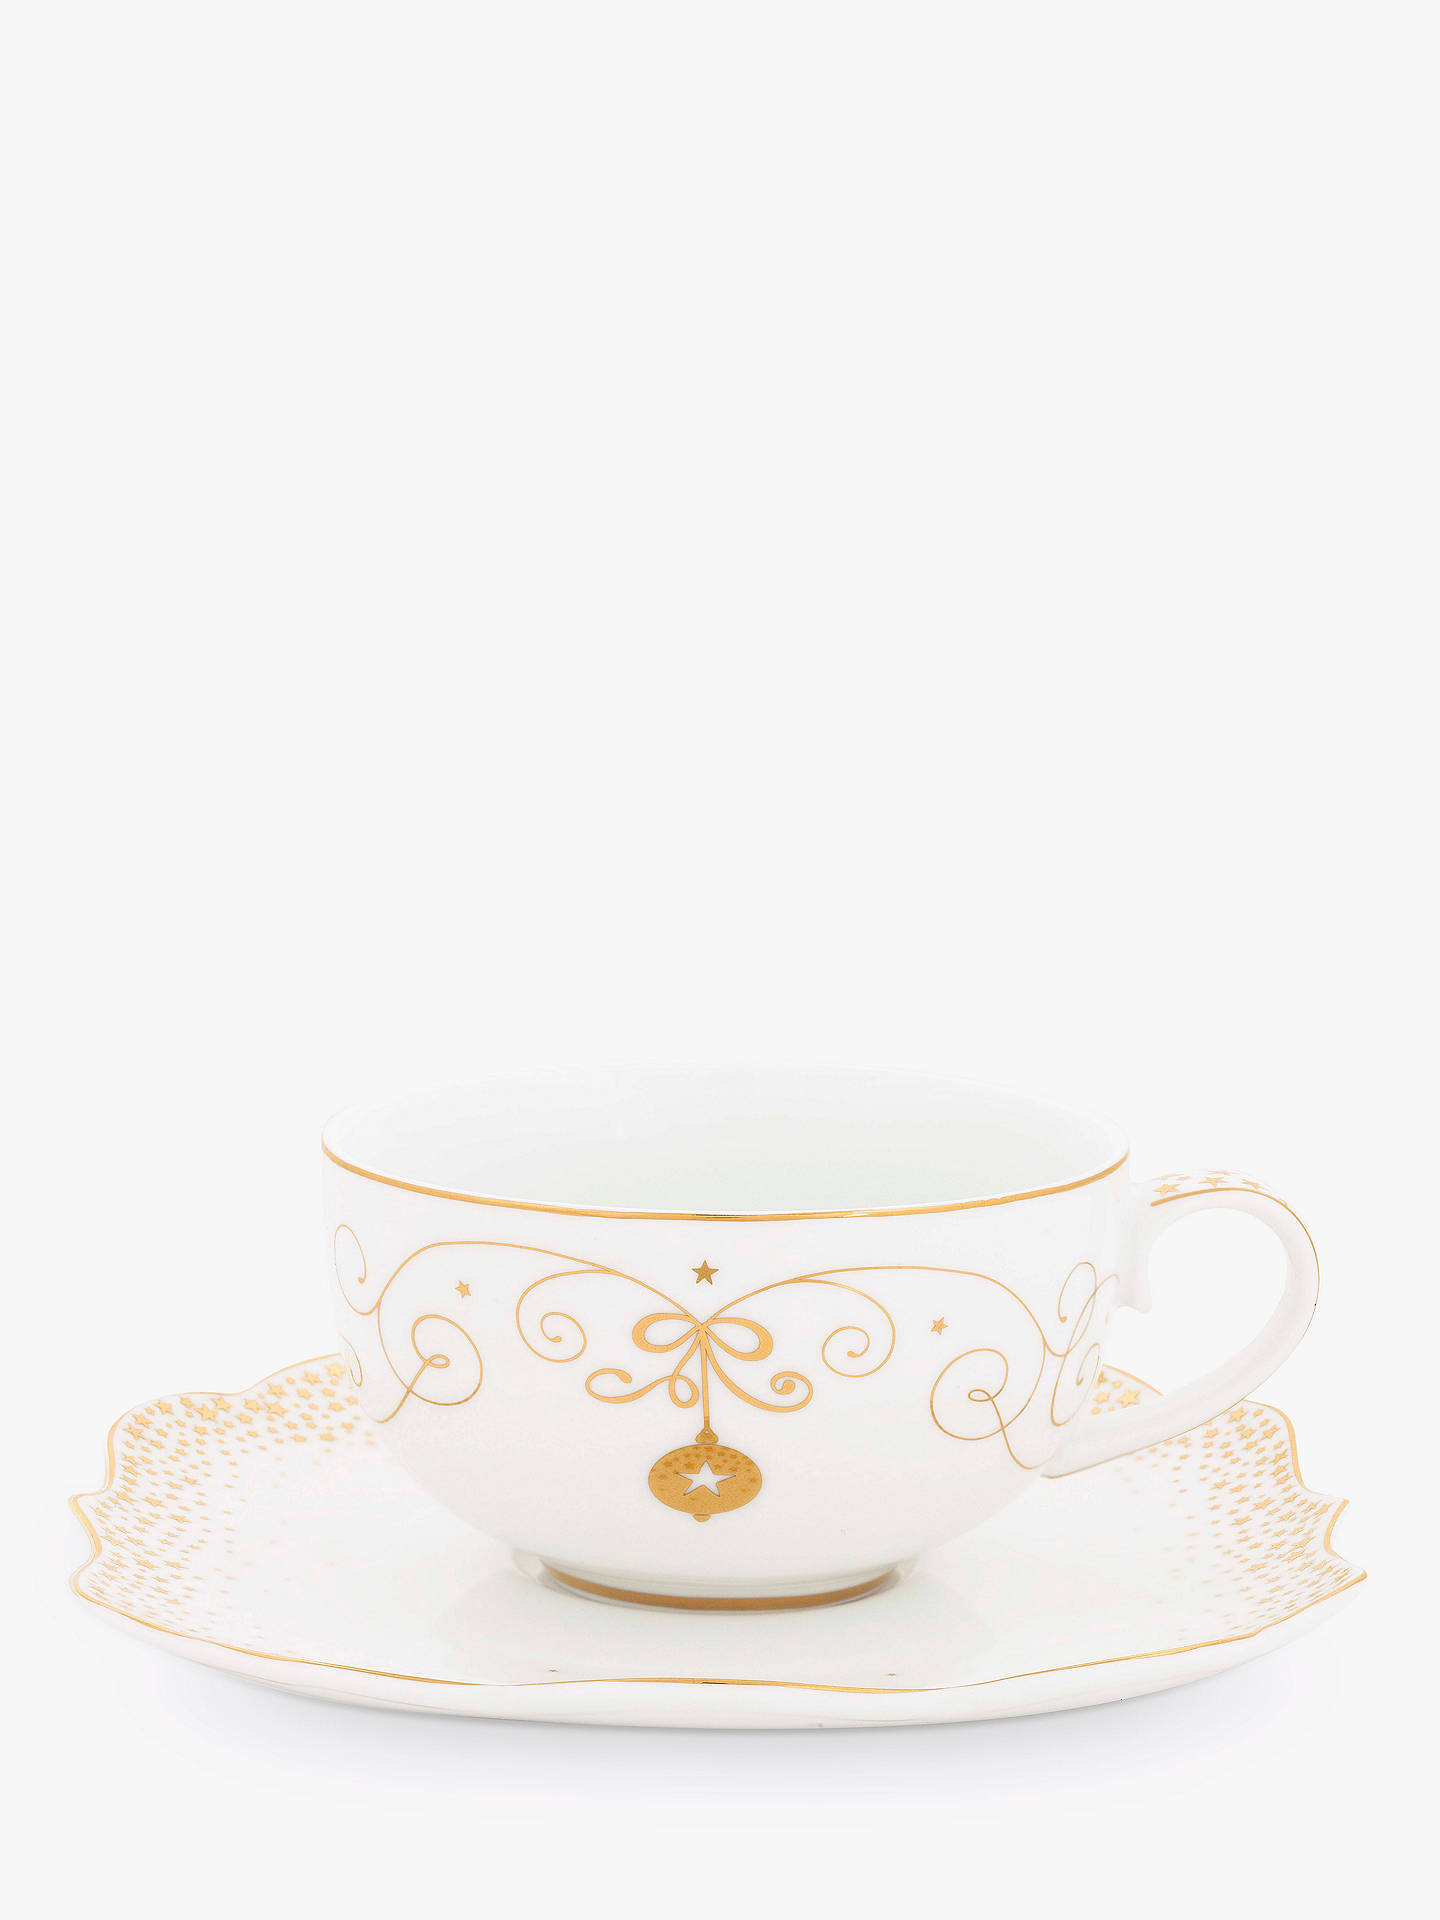 BuyPiP Studio Royal Christmas Tea Cup & Saucer, White/Gold, 225ml Online at johnlewis.com